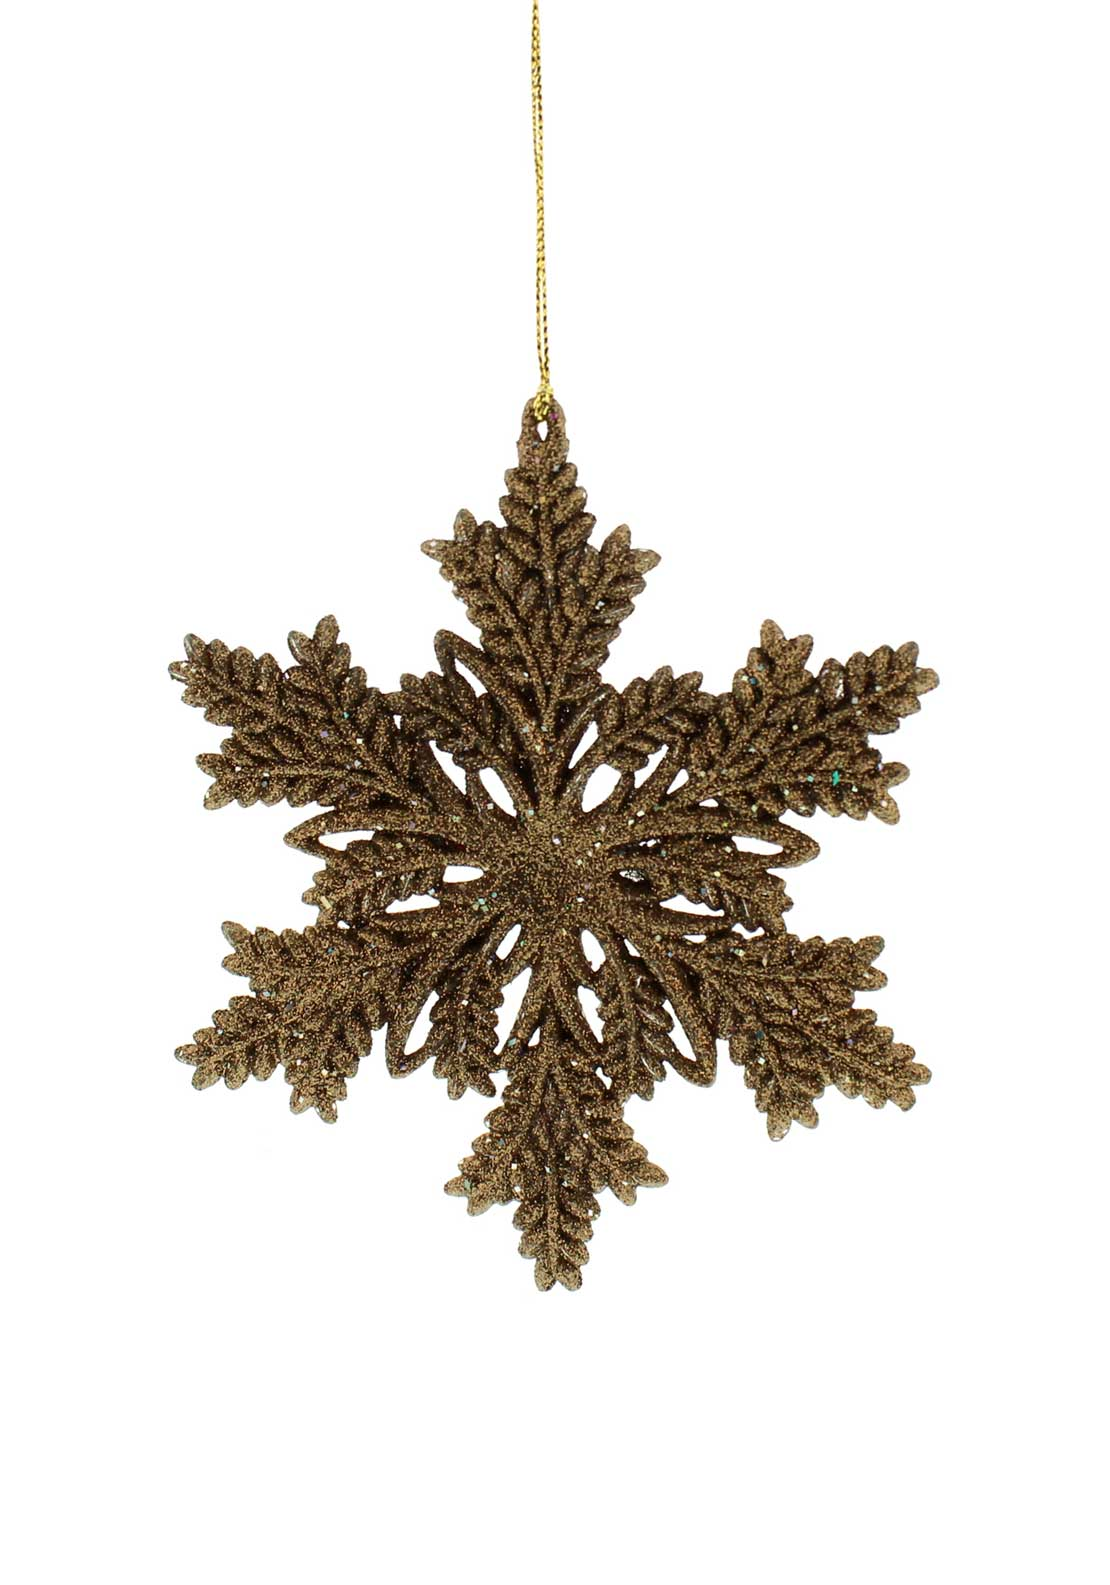 Festive Glitter Snowflake Tree Decoration, Bronze